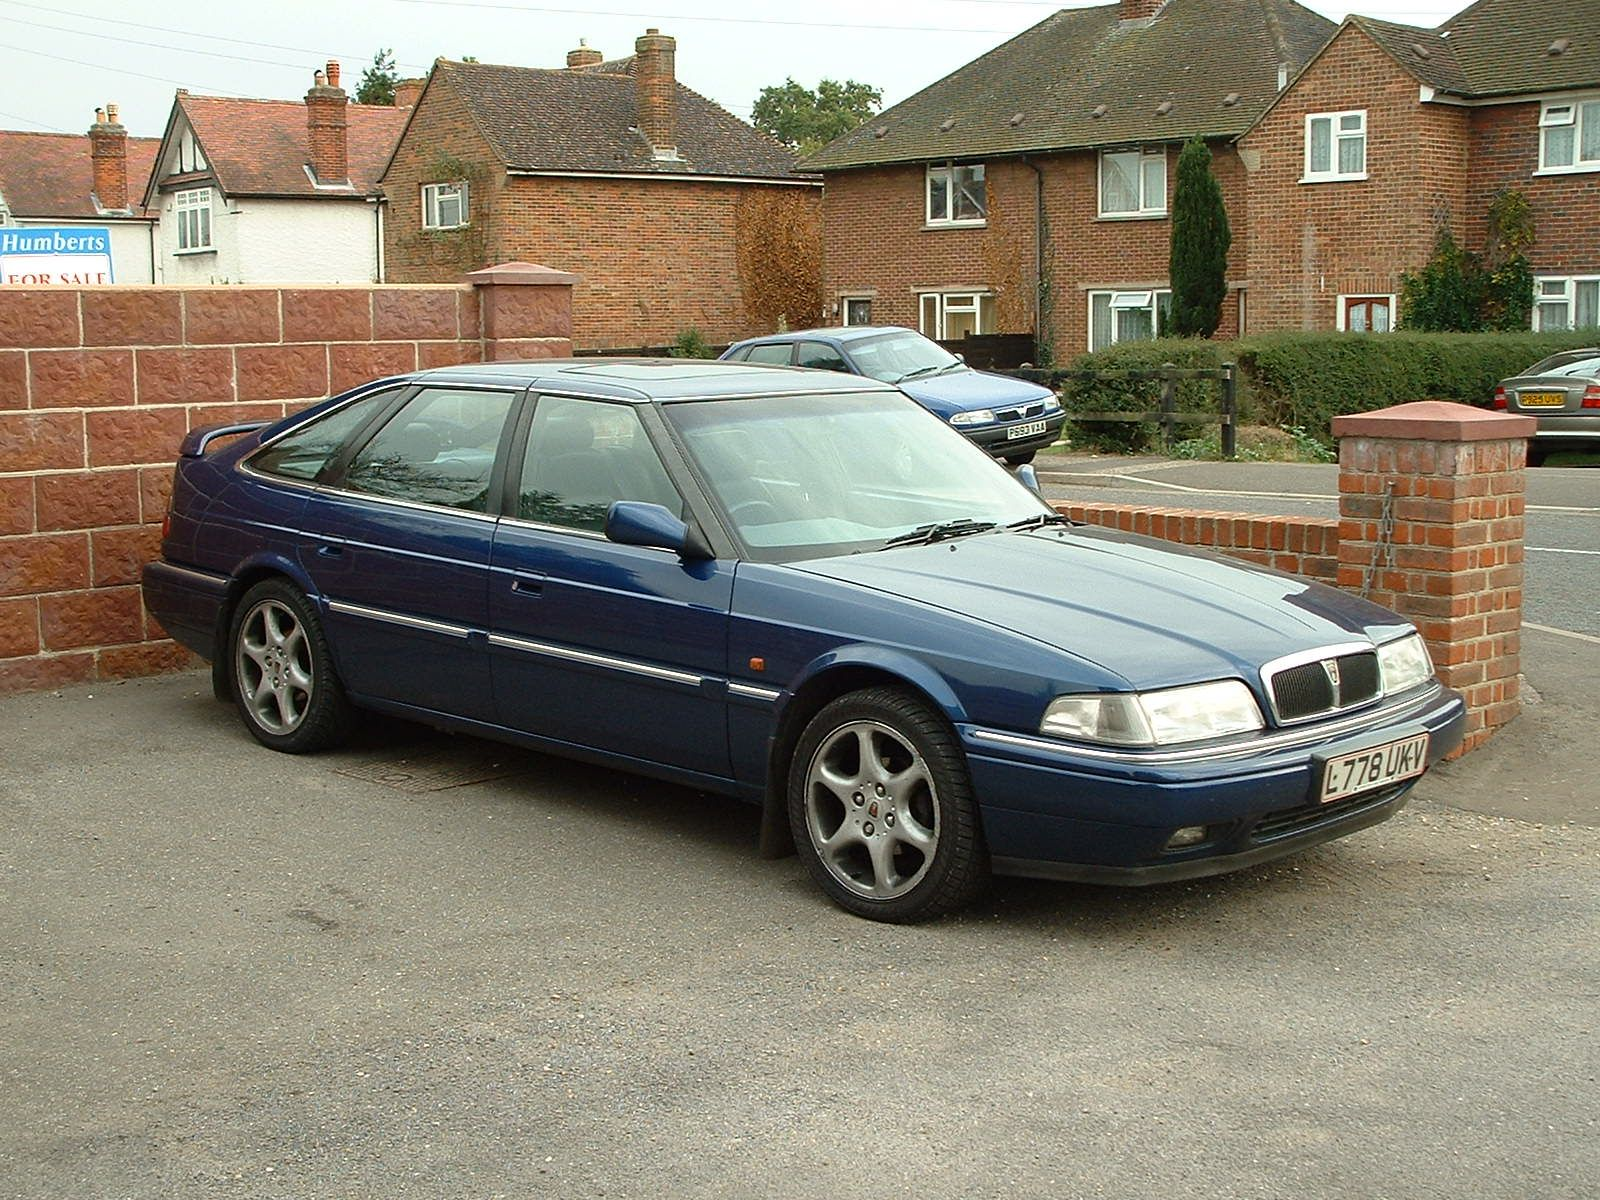 Rover 820 Vitesse Sport Fastback (owned). Great car this